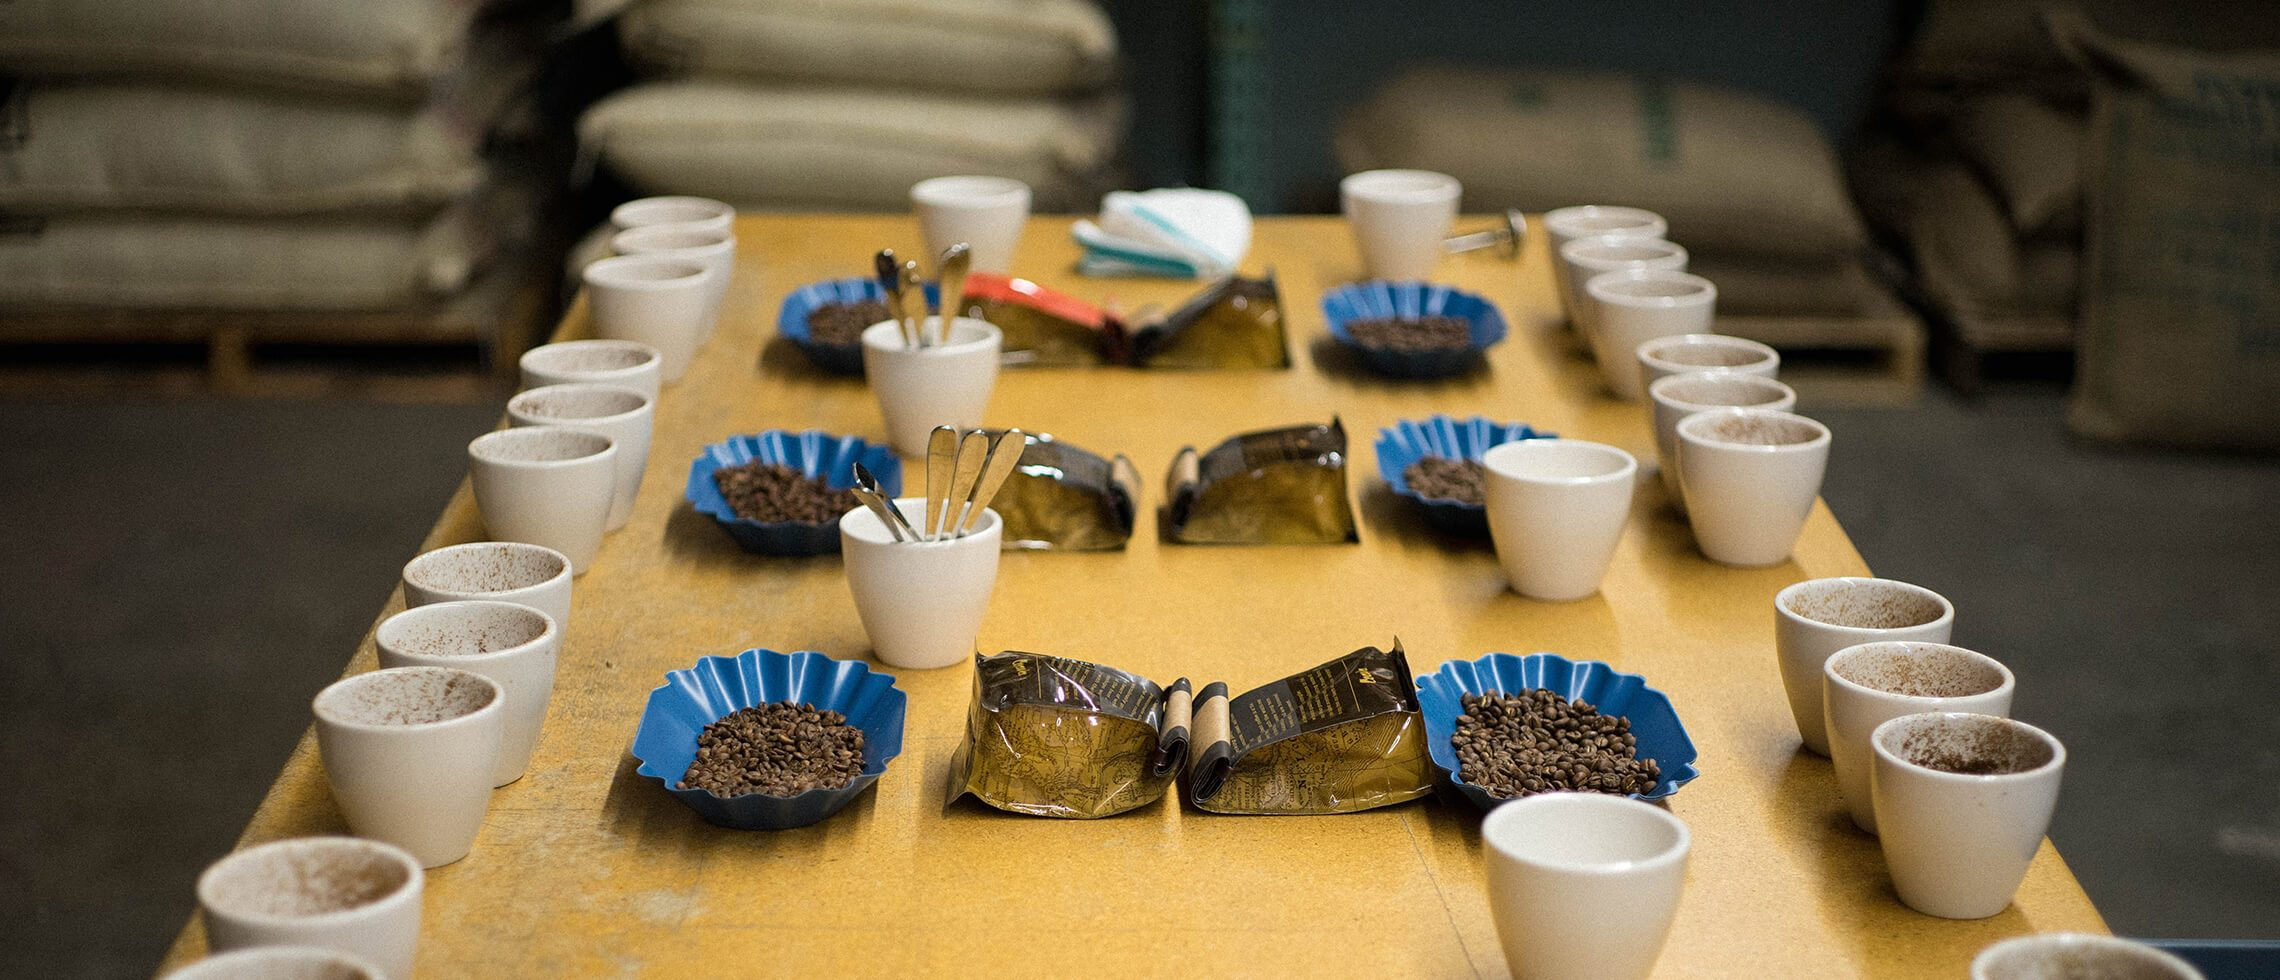 Cupping coffee at Coava